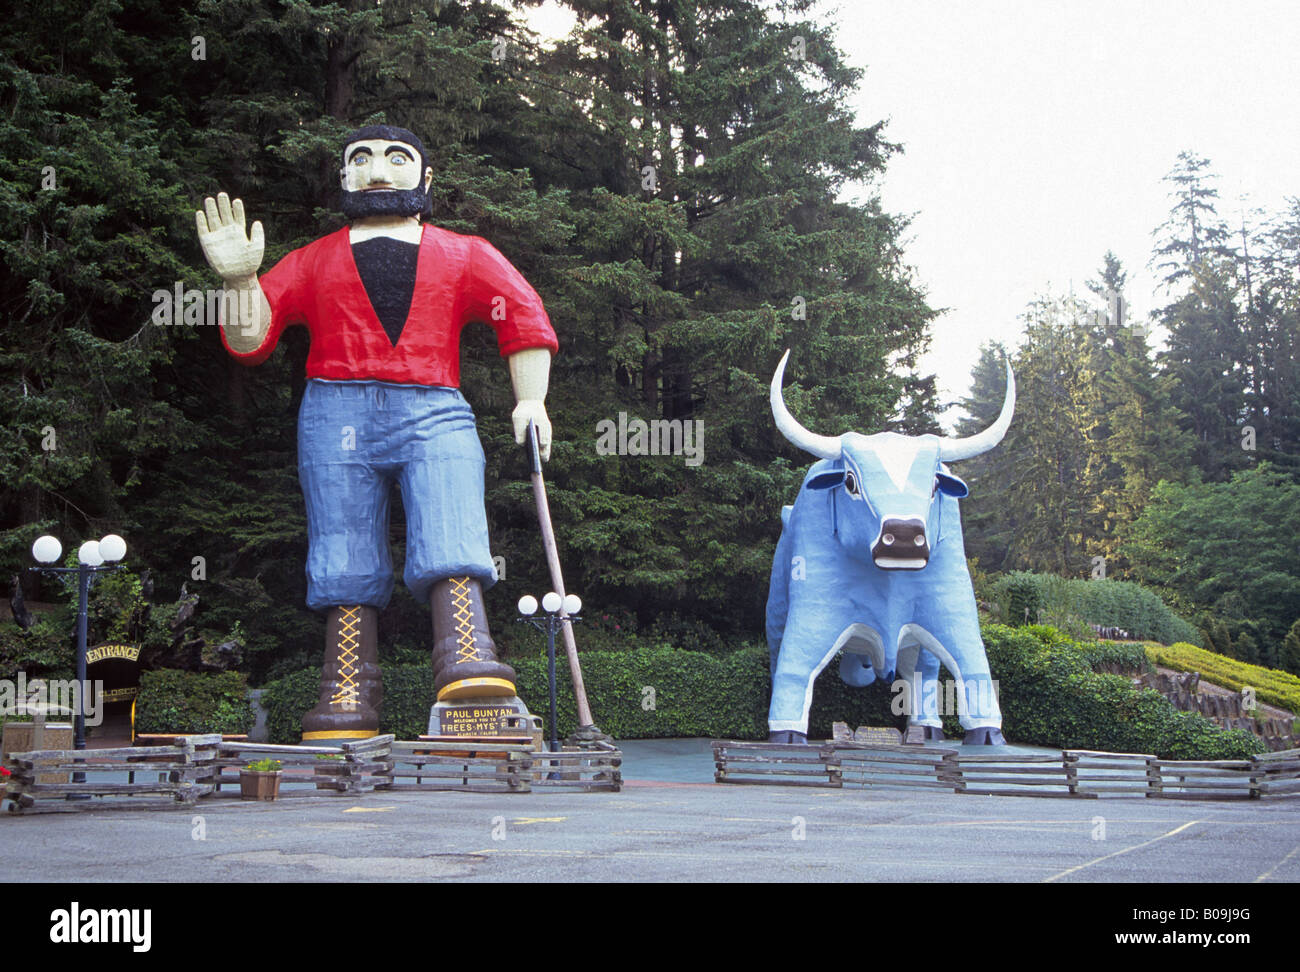 A statue of Paul Bunyan and Babe the Blue Ox at the Trees of Mystery near Redwoods National Park in northern California - Stock Image